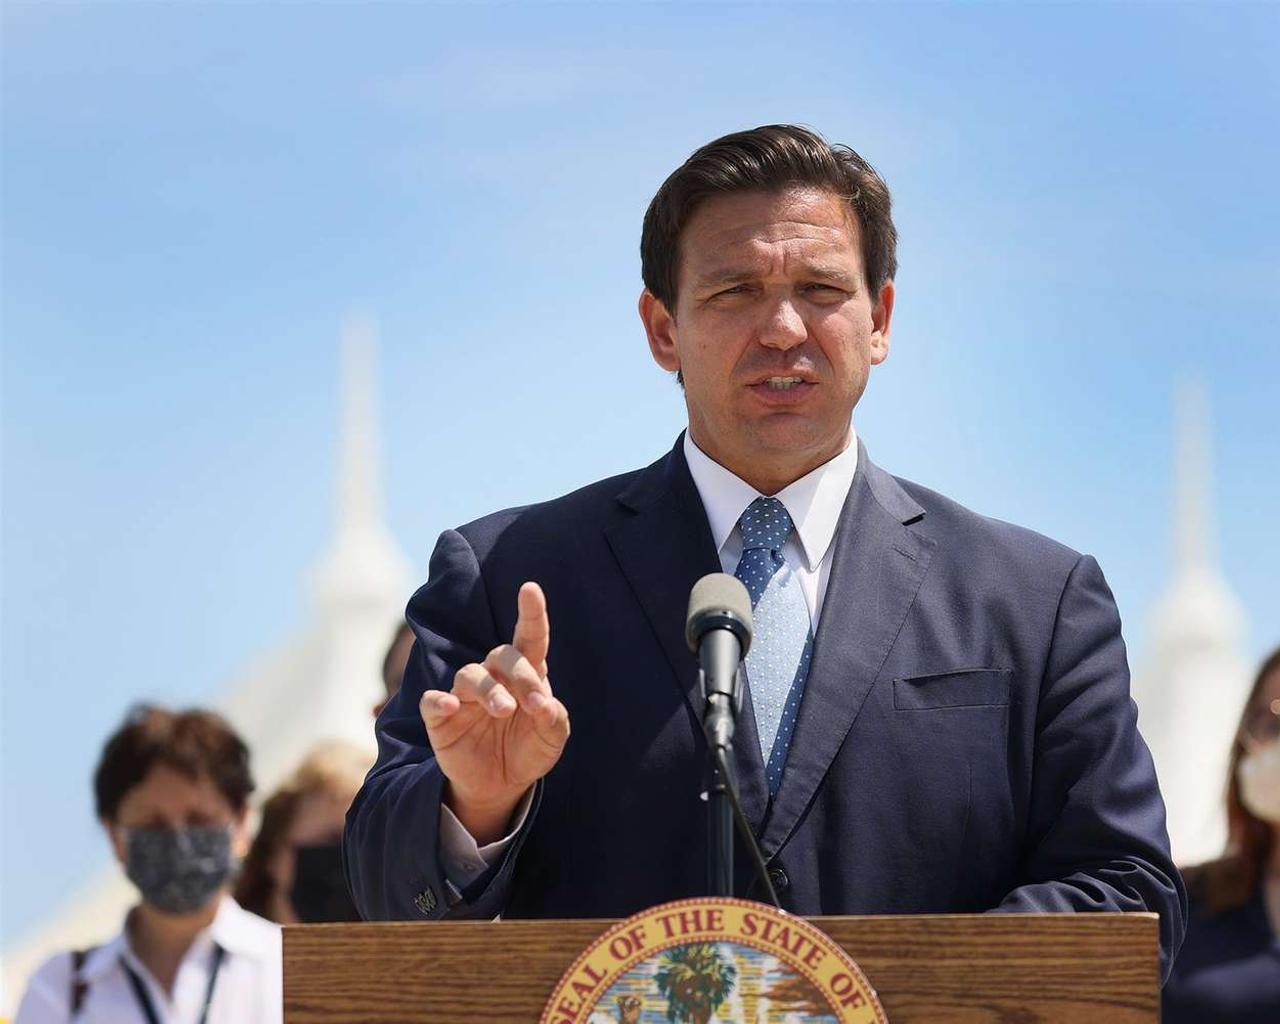 Florida is suing the state government for allowing shipping